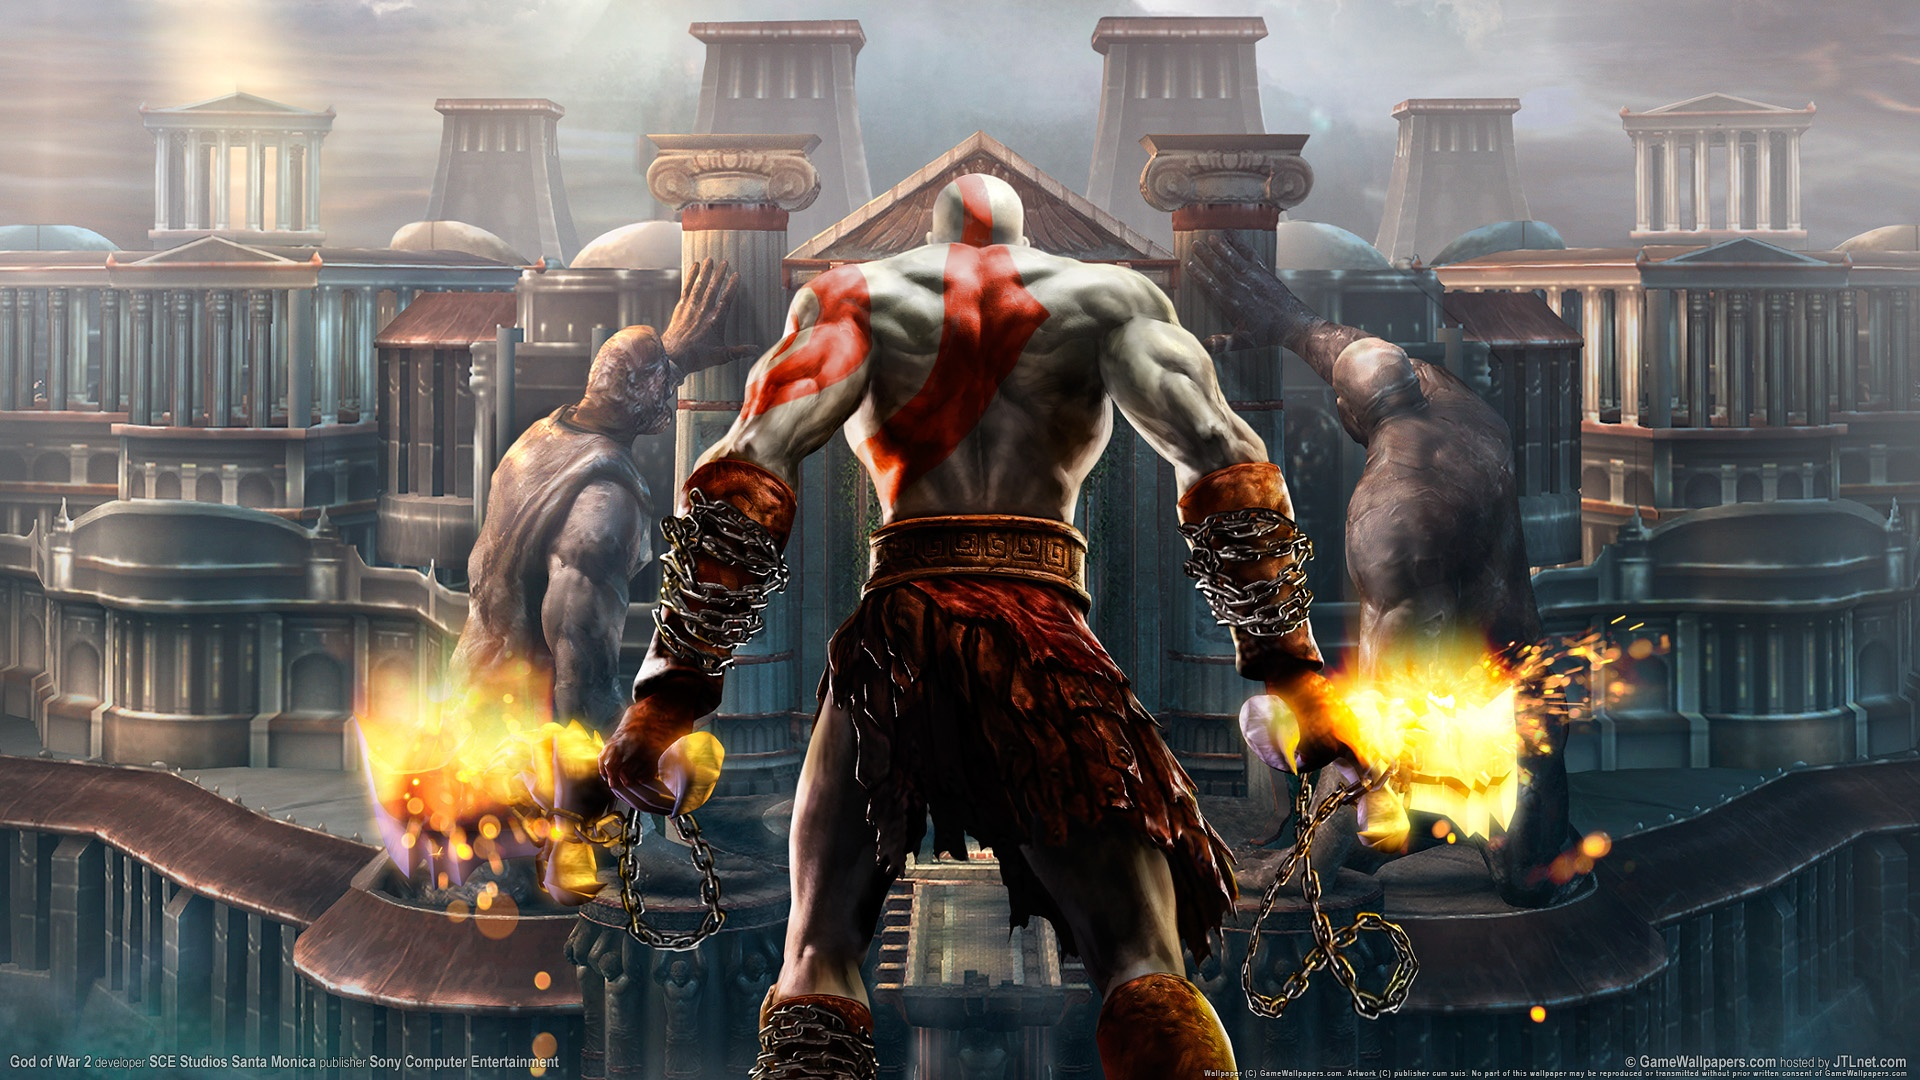 God Of War D God Of War 2 Hd Wallpapers In Jpg Format For Free Download